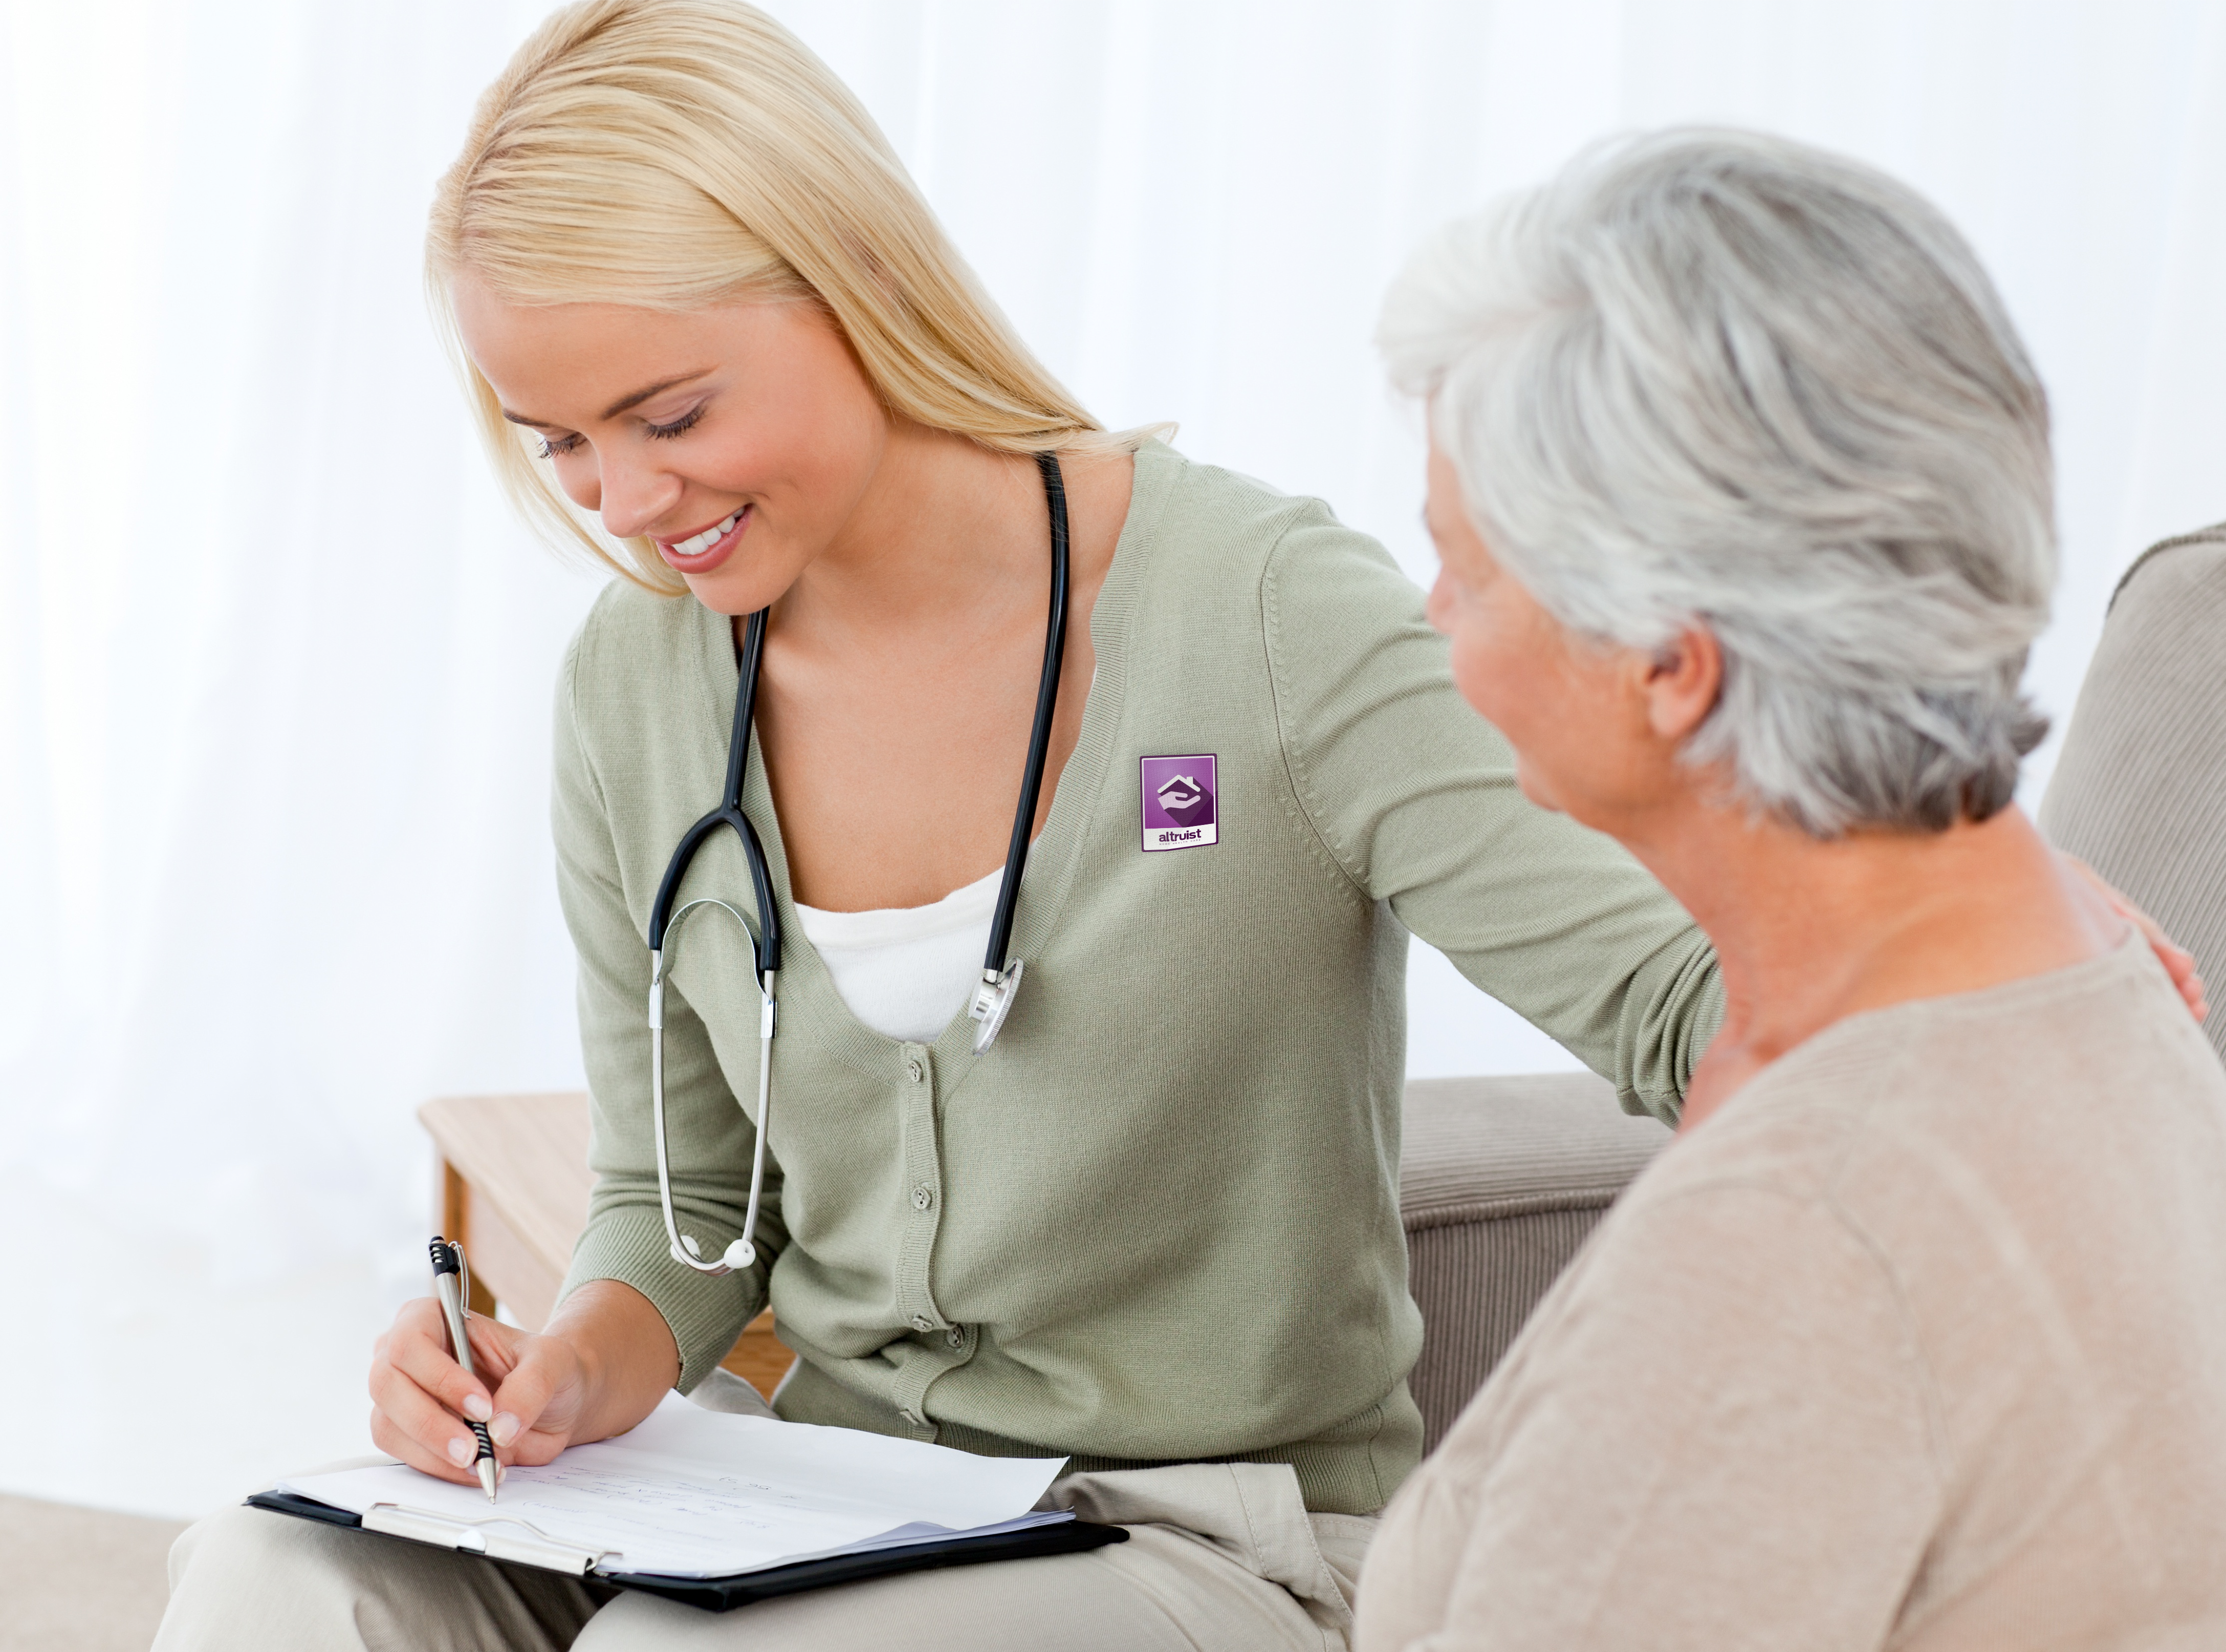 KEEP YOUR PRIMARY CARE PHYSICIAN